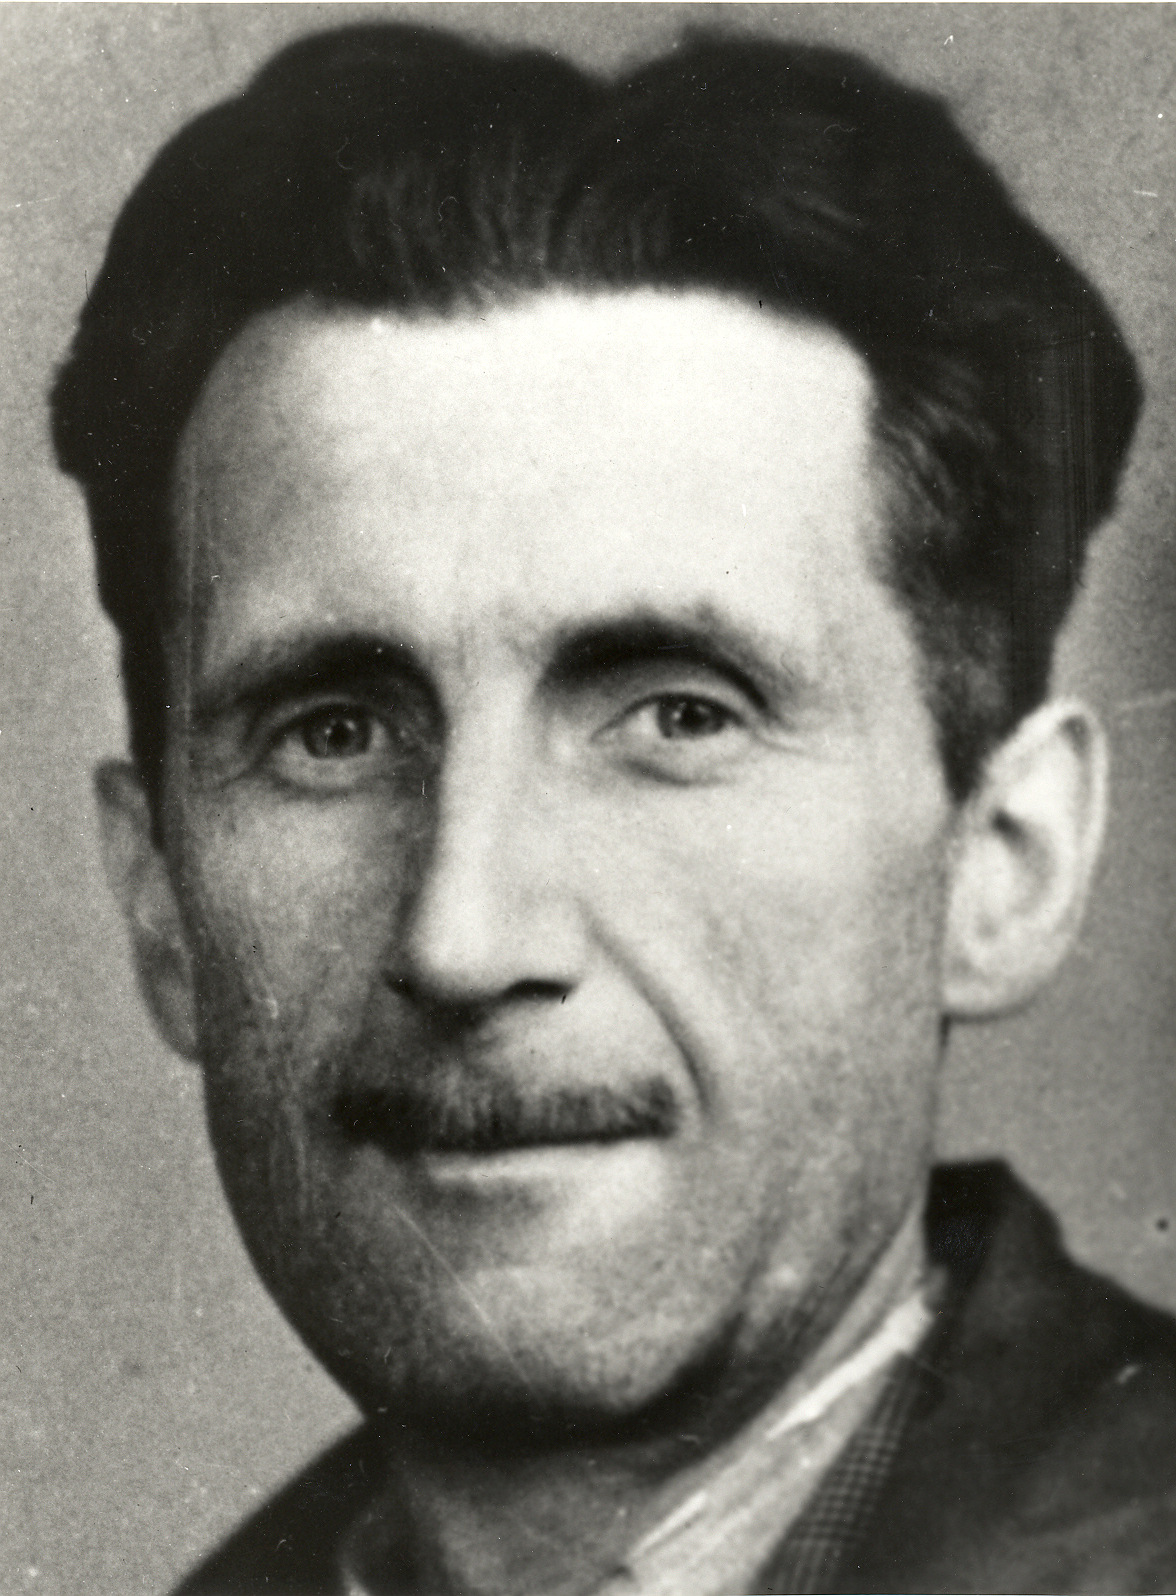 George Orwell Inspirational Quotes